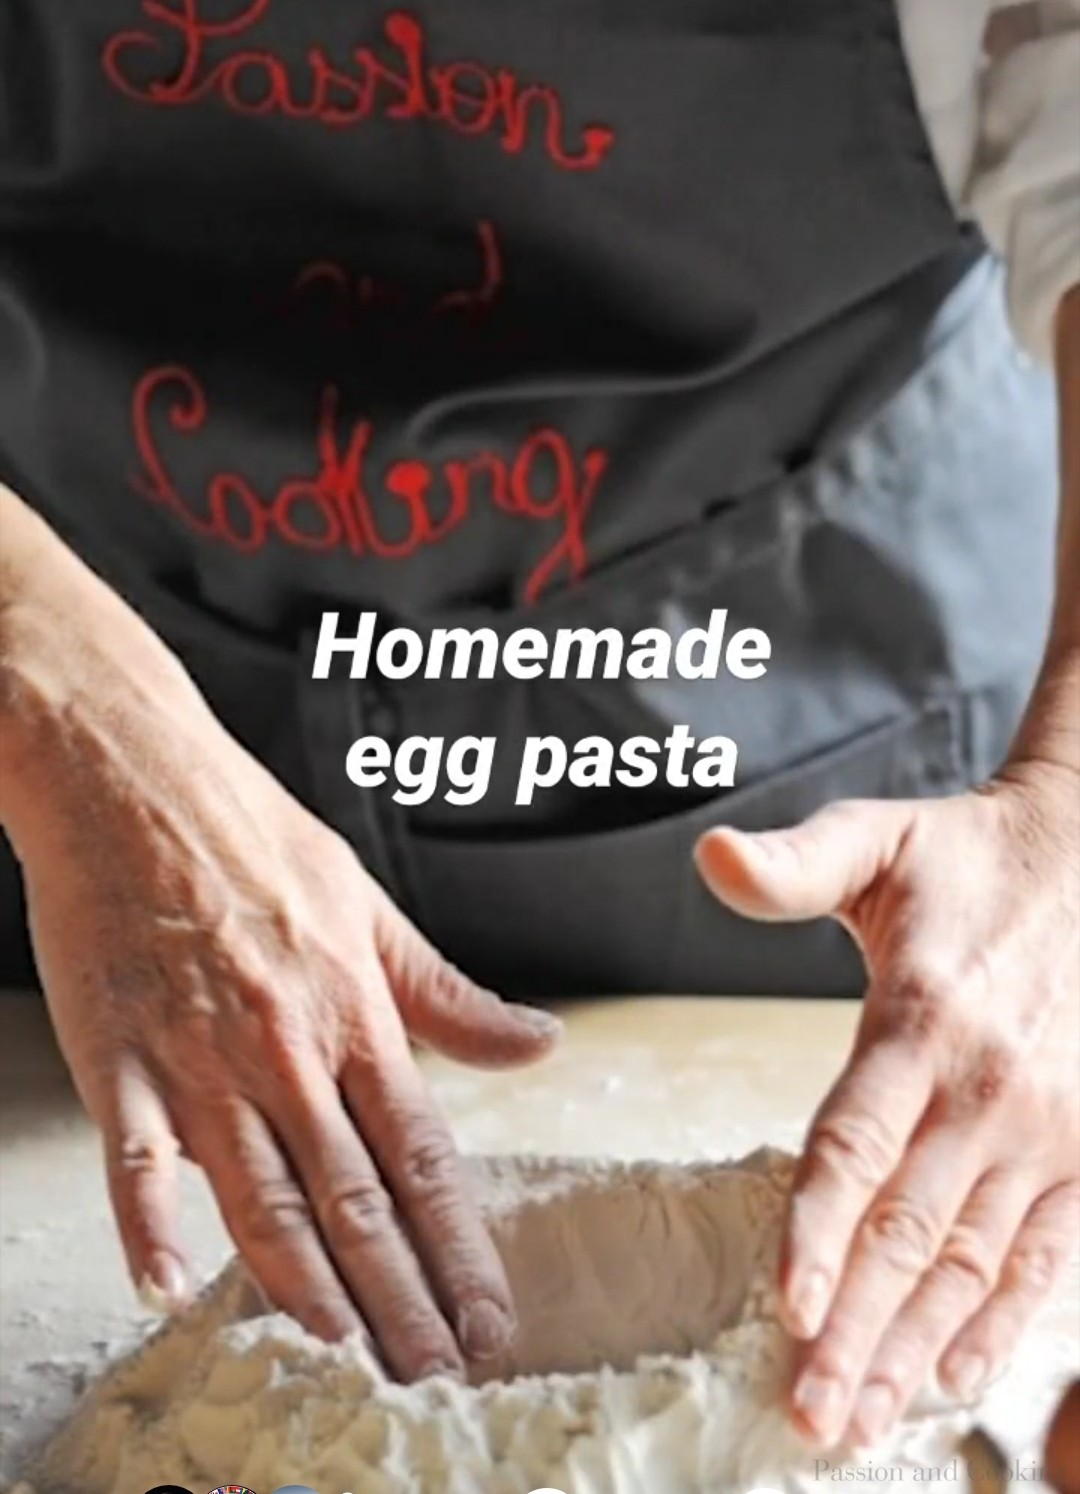 Homemade egg pasta